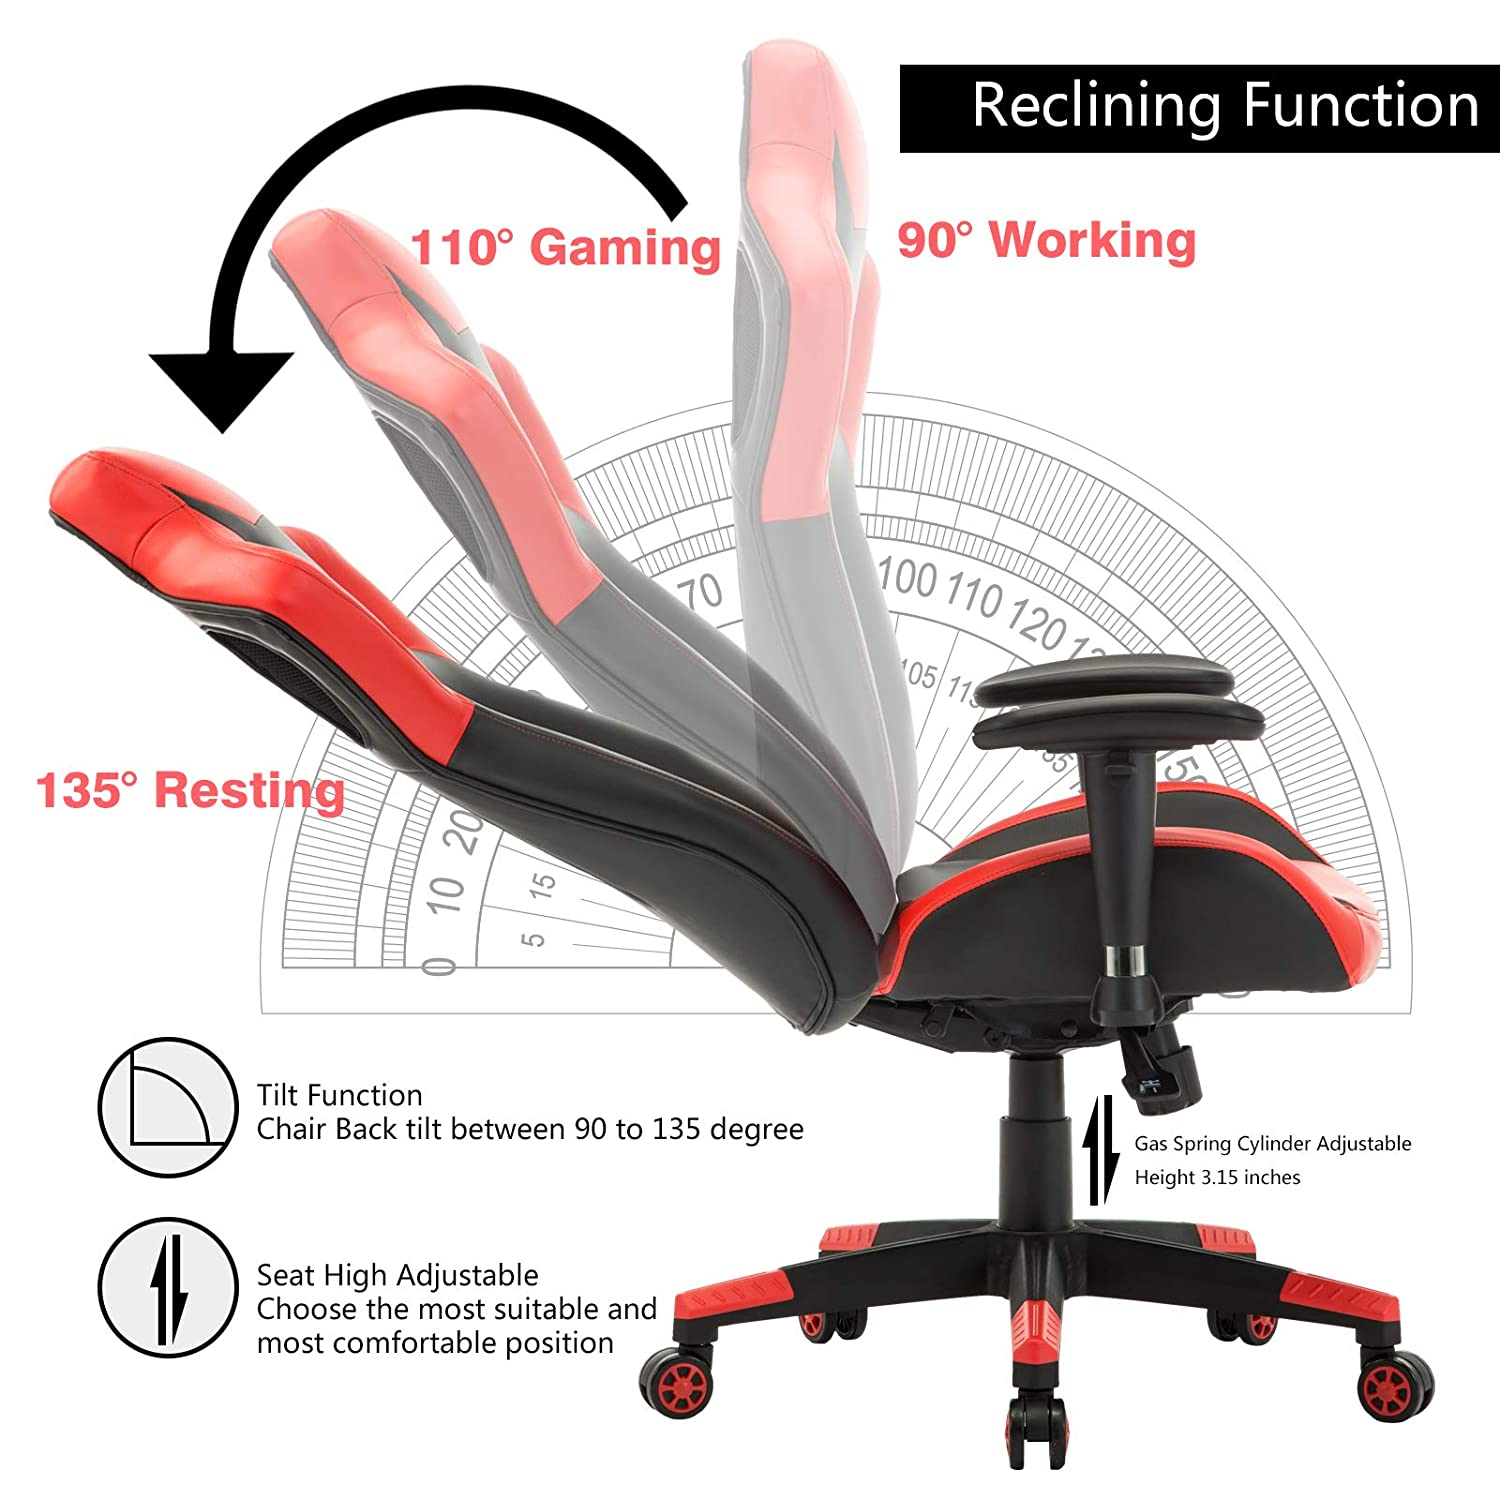 Simlife 440 LBS Large PC Gaming Racing Chair Tall Back Swivel Office Computer Desk Chairs with 135 Back Reclining Adjustable Height Armrest, Gifts for Boy